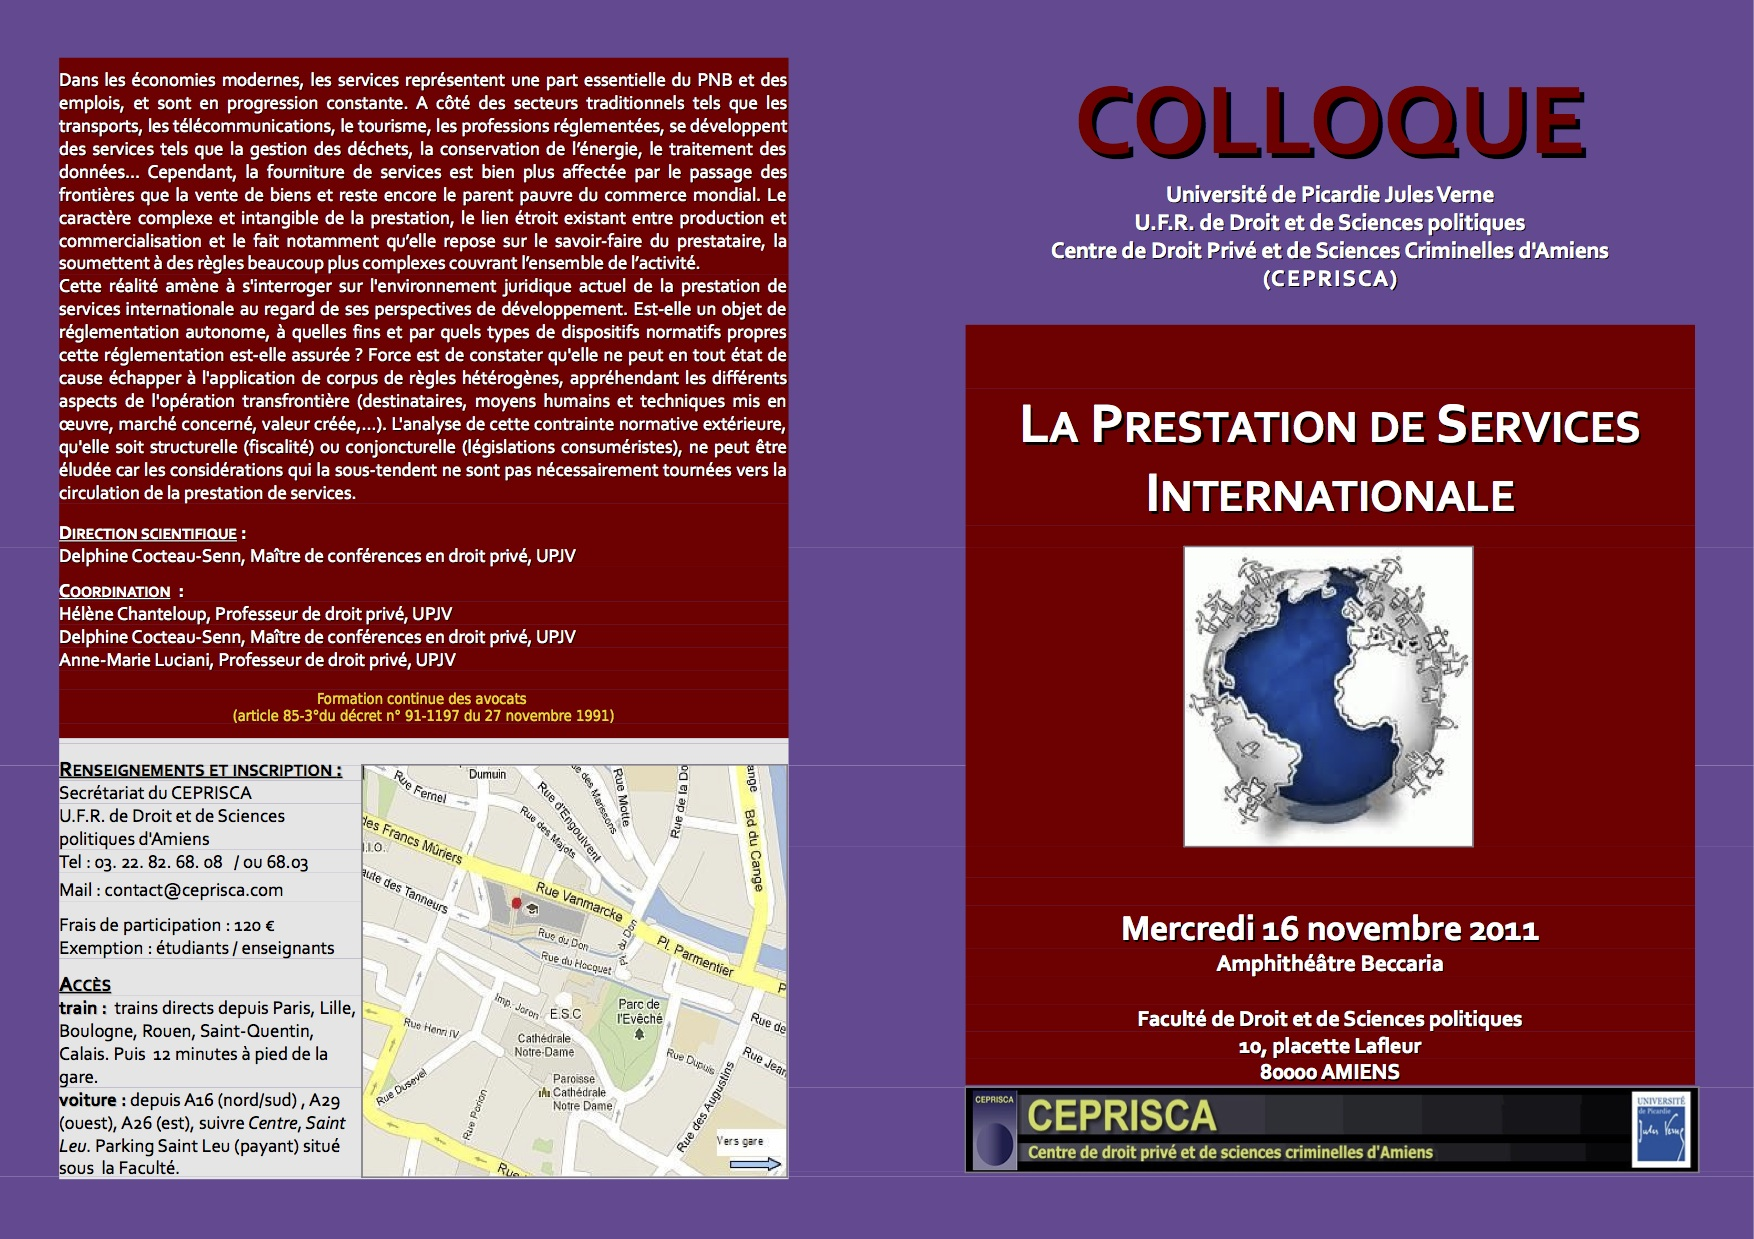 CEPRISCA-_Programme-_La_Prestation_de_Services_internationale-_16_novembre_2011